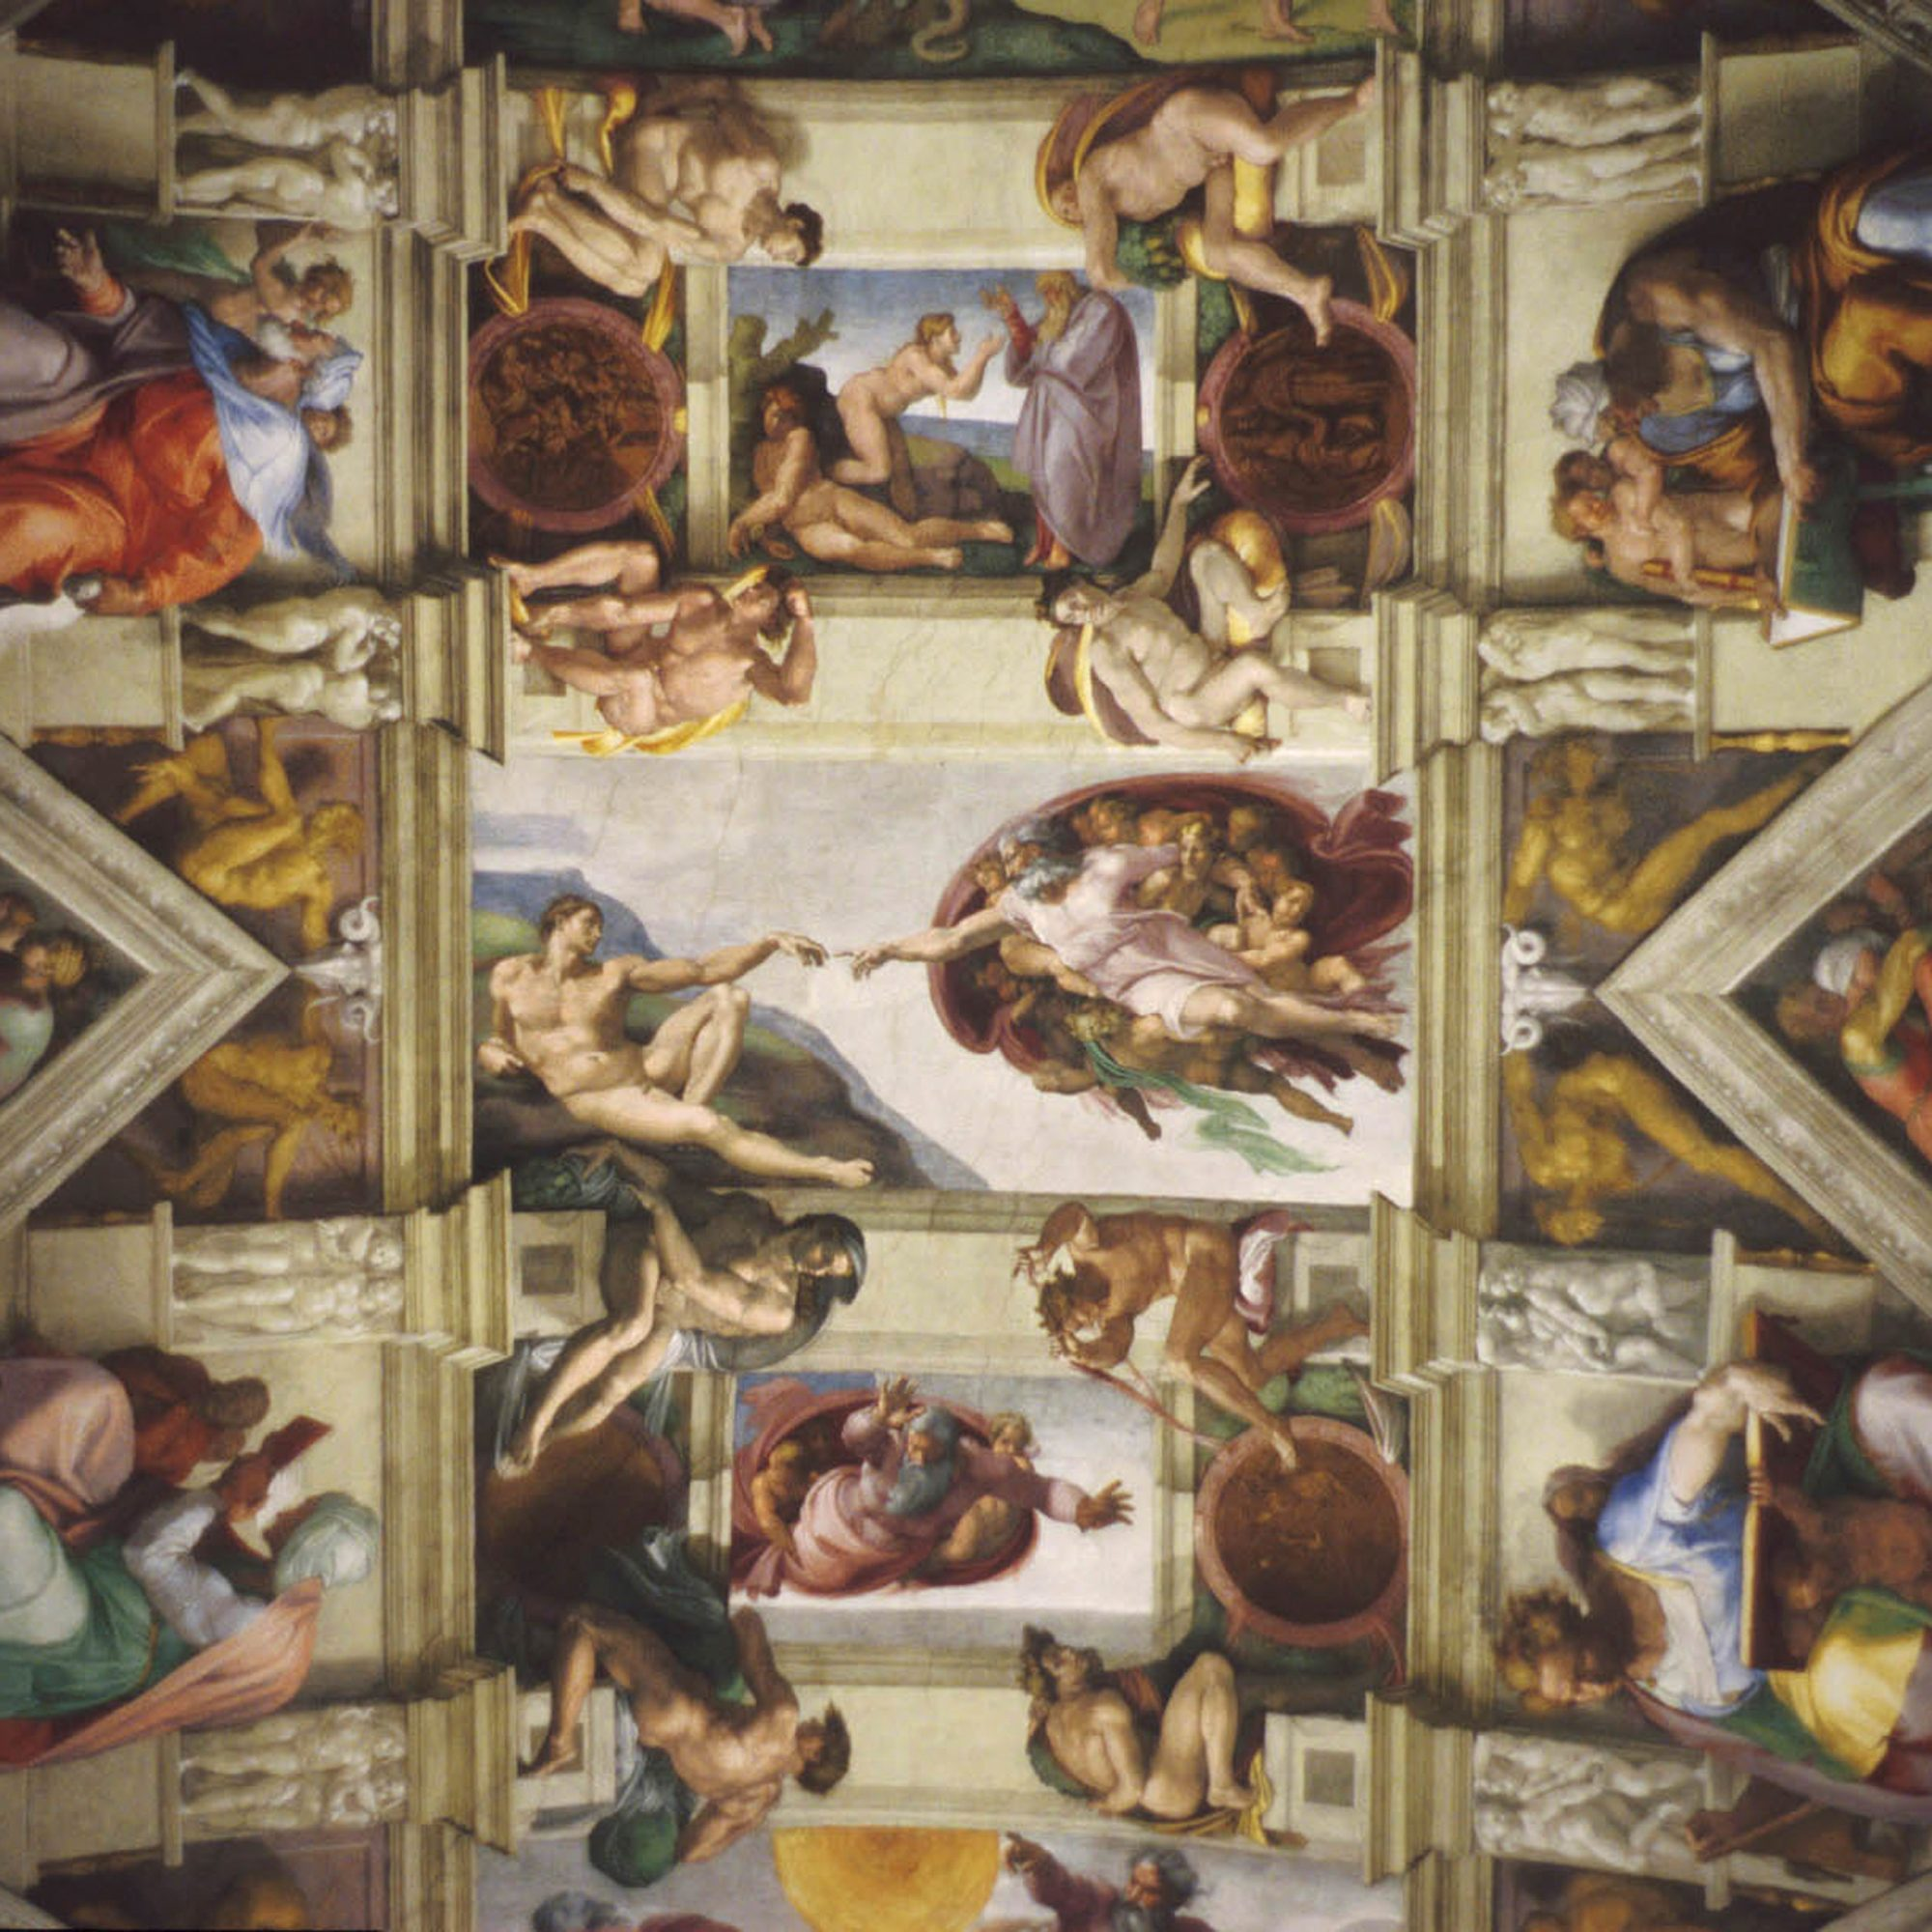 God rides a brain in the Sistine Chapel